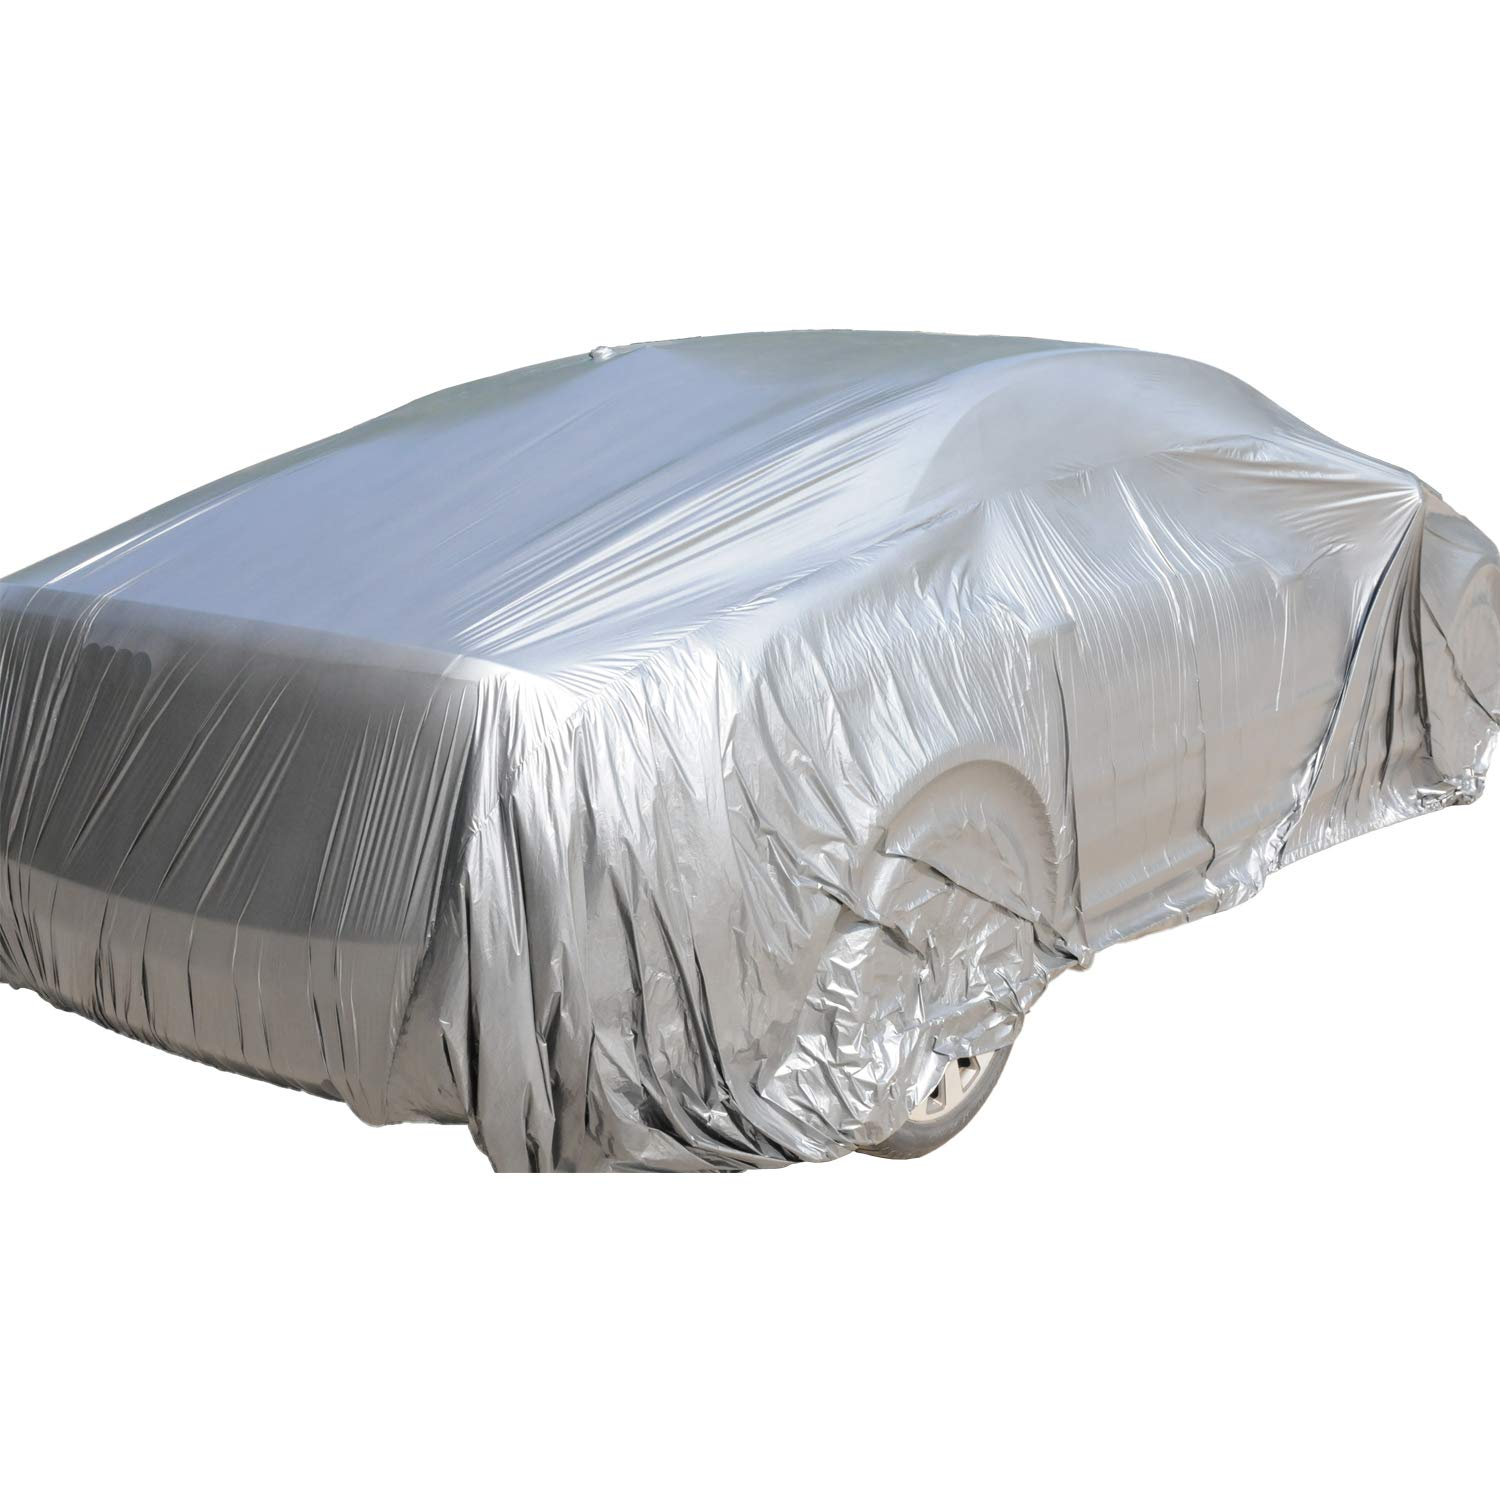 TopSoon Universal Plastic Car Cover with Elastic Band Waterproof Sliver PE Disposable Car Cover Medium Size 12-Feet by 22-Feet